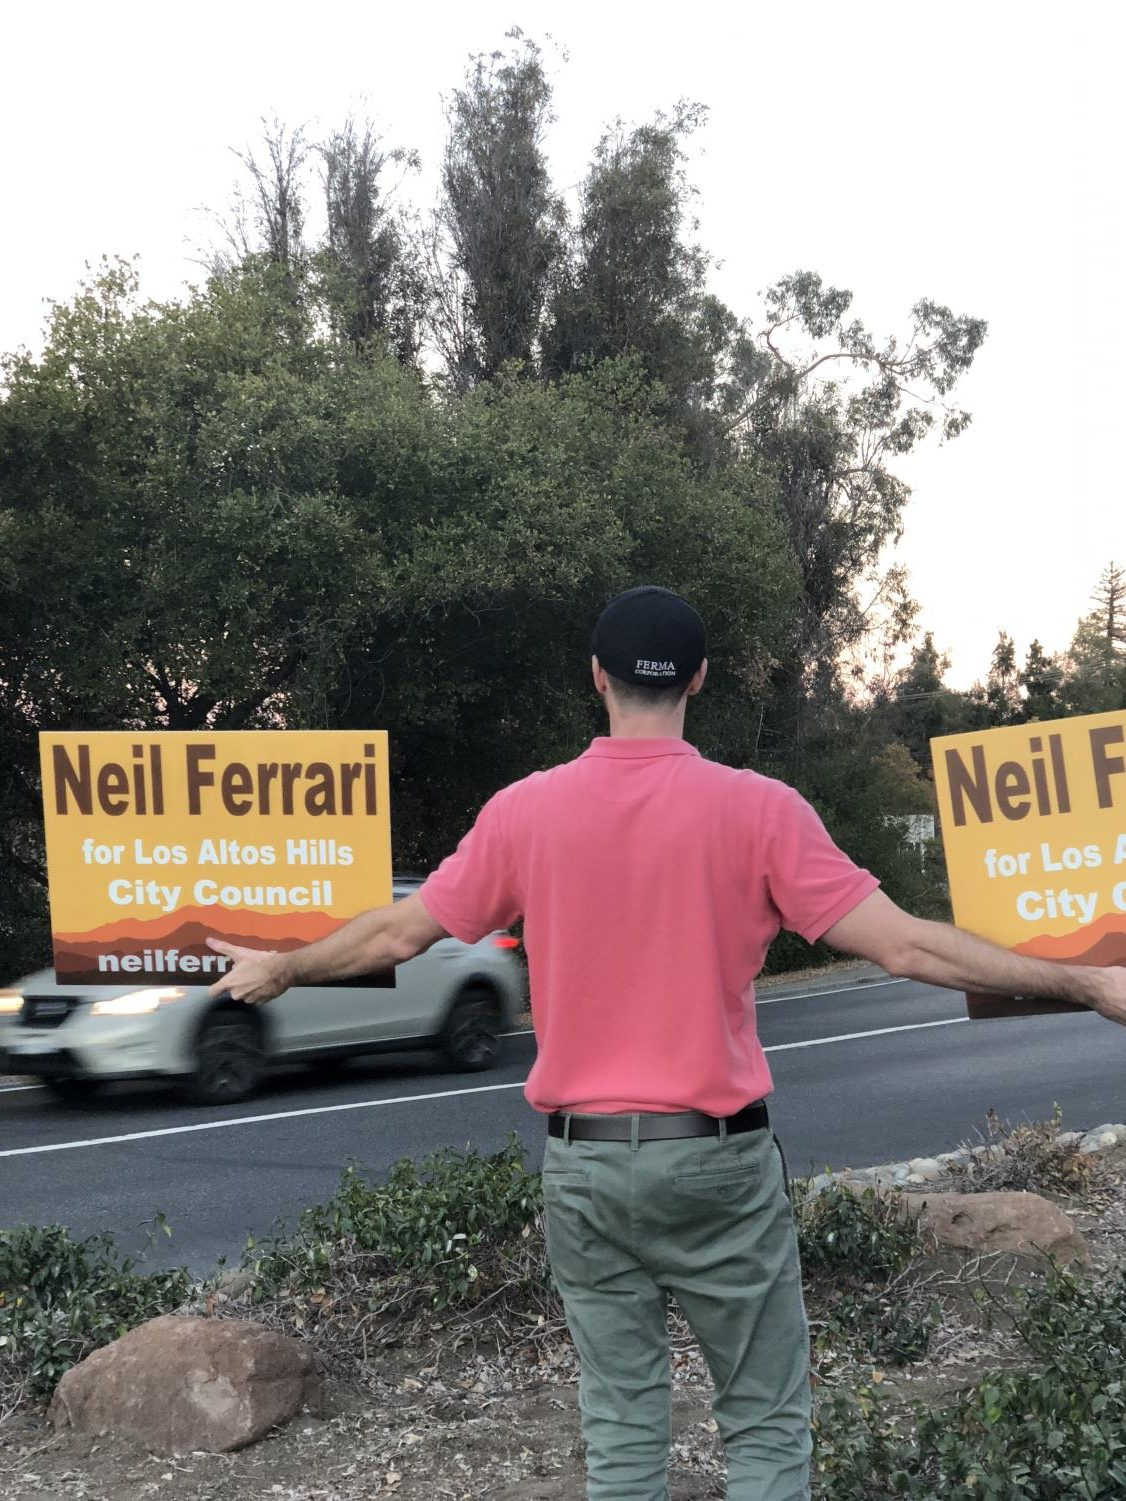 Los+Altos+Hills+Candidate+Neil+Ferrari+stands+on+an+island+dividing+traffic+to+campaign+hours+before+voting+finishes.